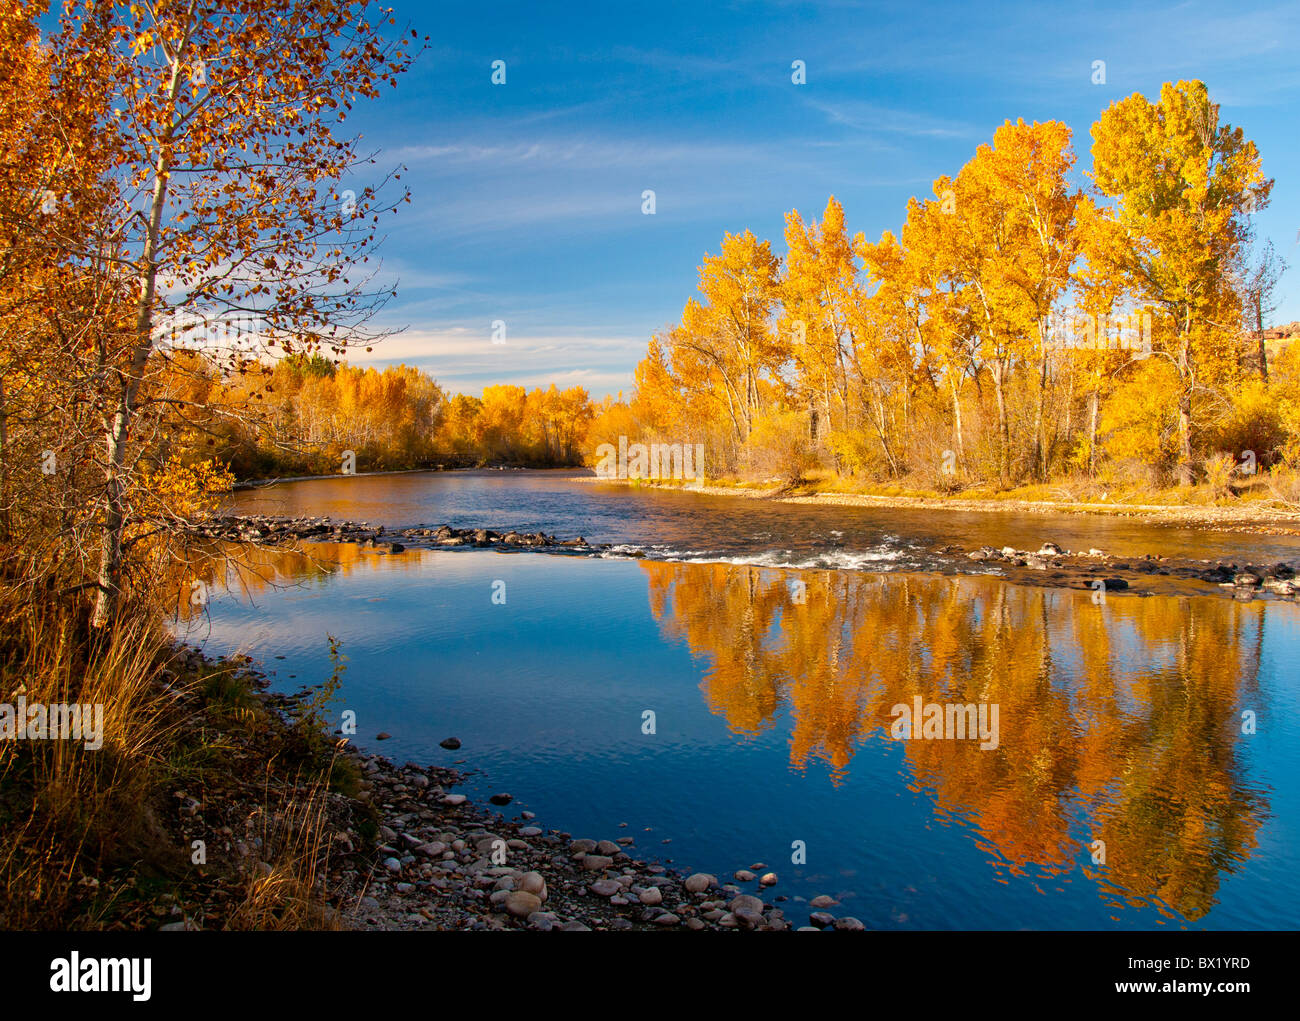 USA, Idaho, City of Boise, Scenic view of Cottonwood trees reflecting fall colors in the Boise River, Boise River - Stock Image